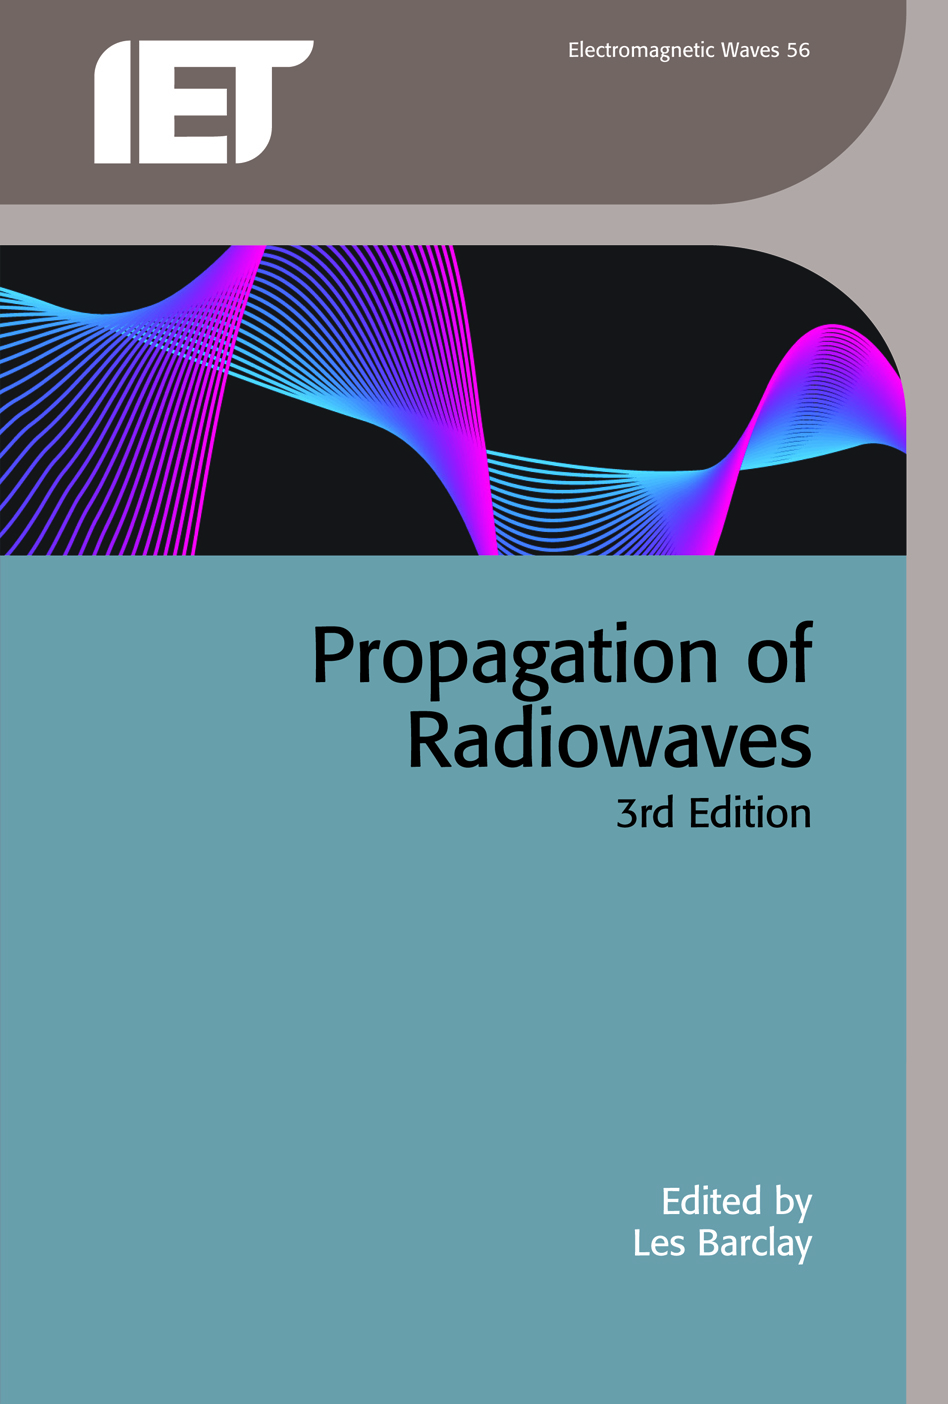 Propagation of Radiowaves, 3rd Edition